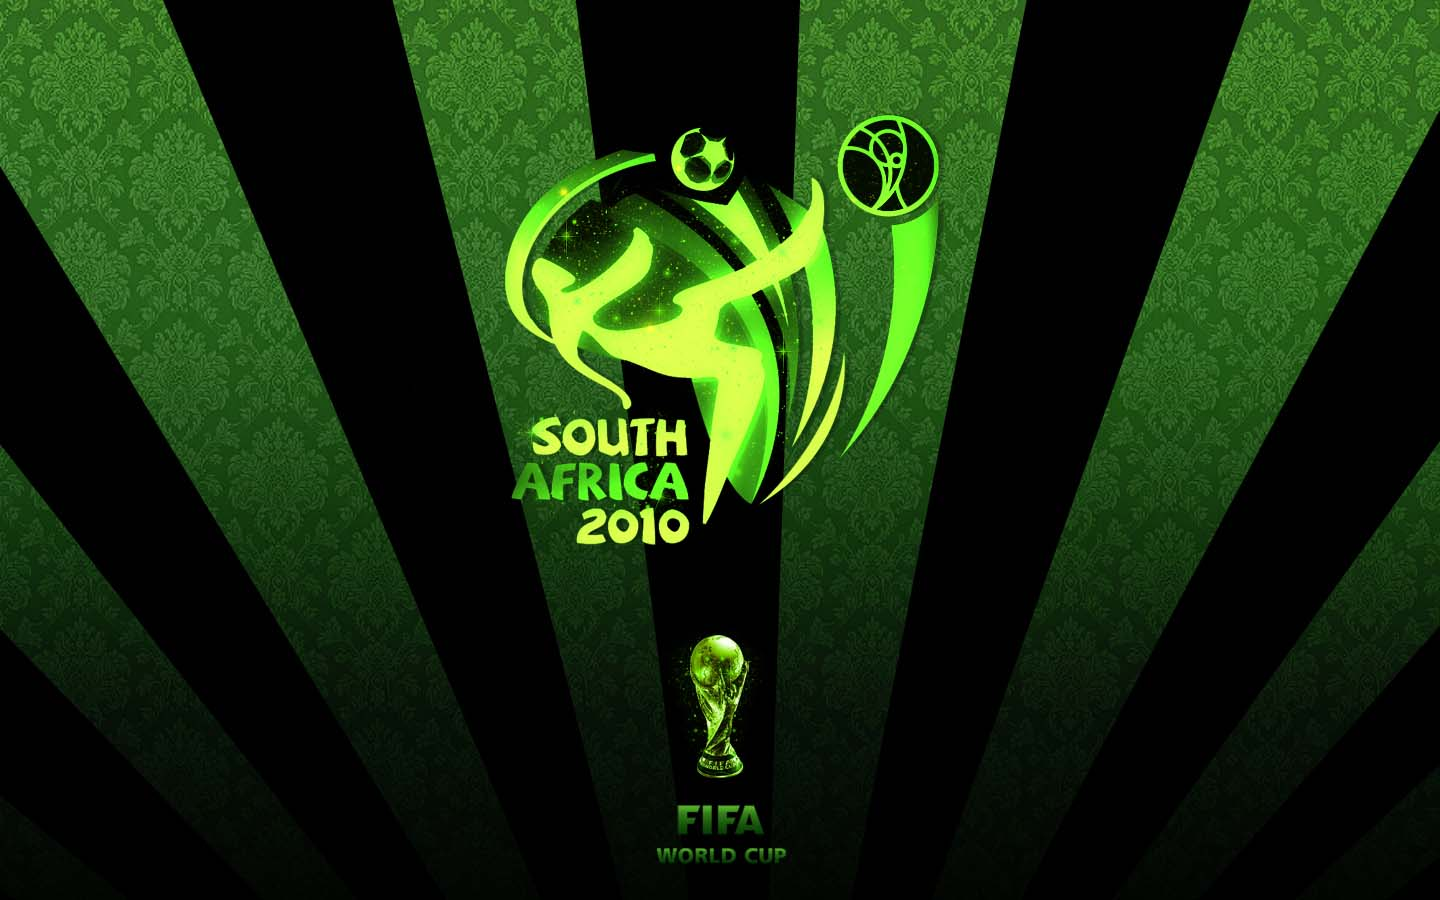 Sajid Ahmed: Fifa world cup 2010